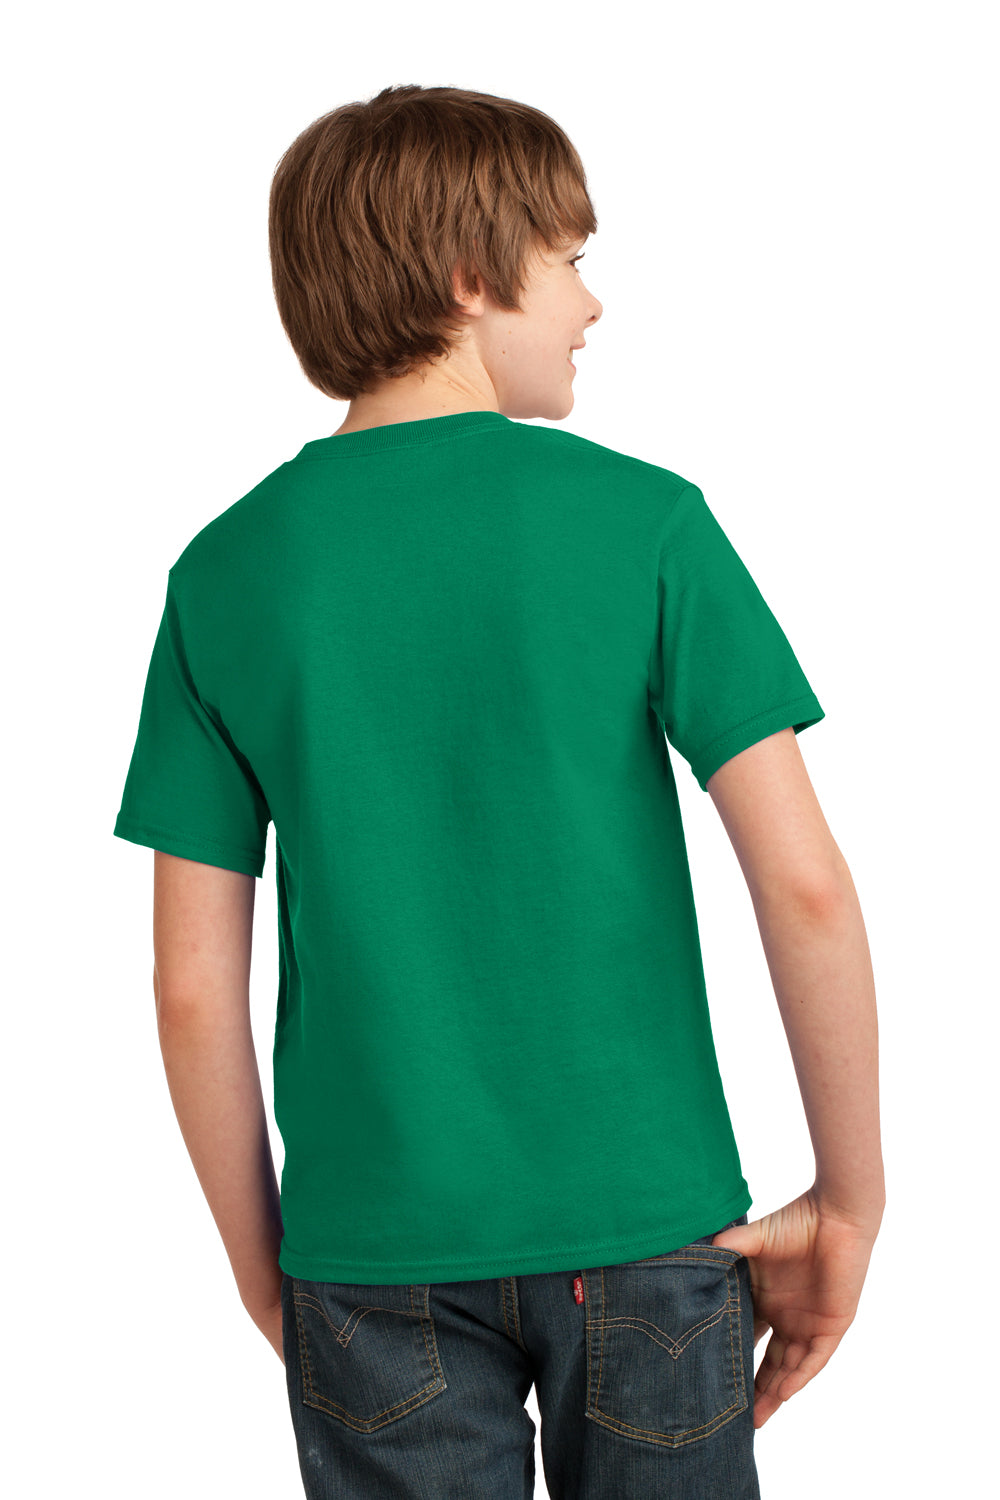 Port & Company PC61Y Youth Essential Short Sleeve Crewneck T-Shirt Kelly Green Back